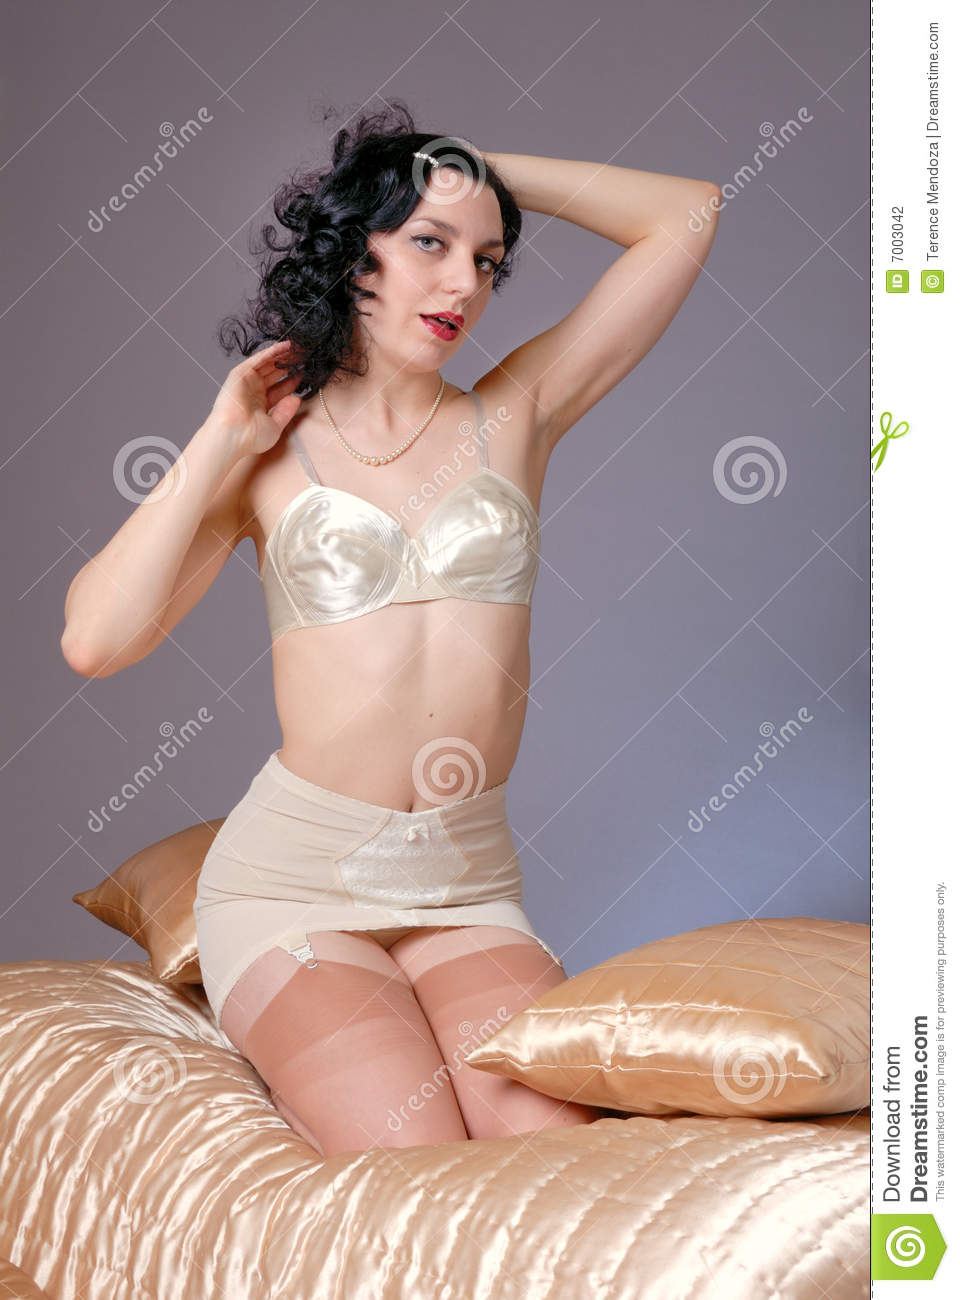 7f934bf09 Retro fifties pin-up attractive girl in vintage satin bra and girdle in  boudoire   bedroom - satin cover pin-up concept